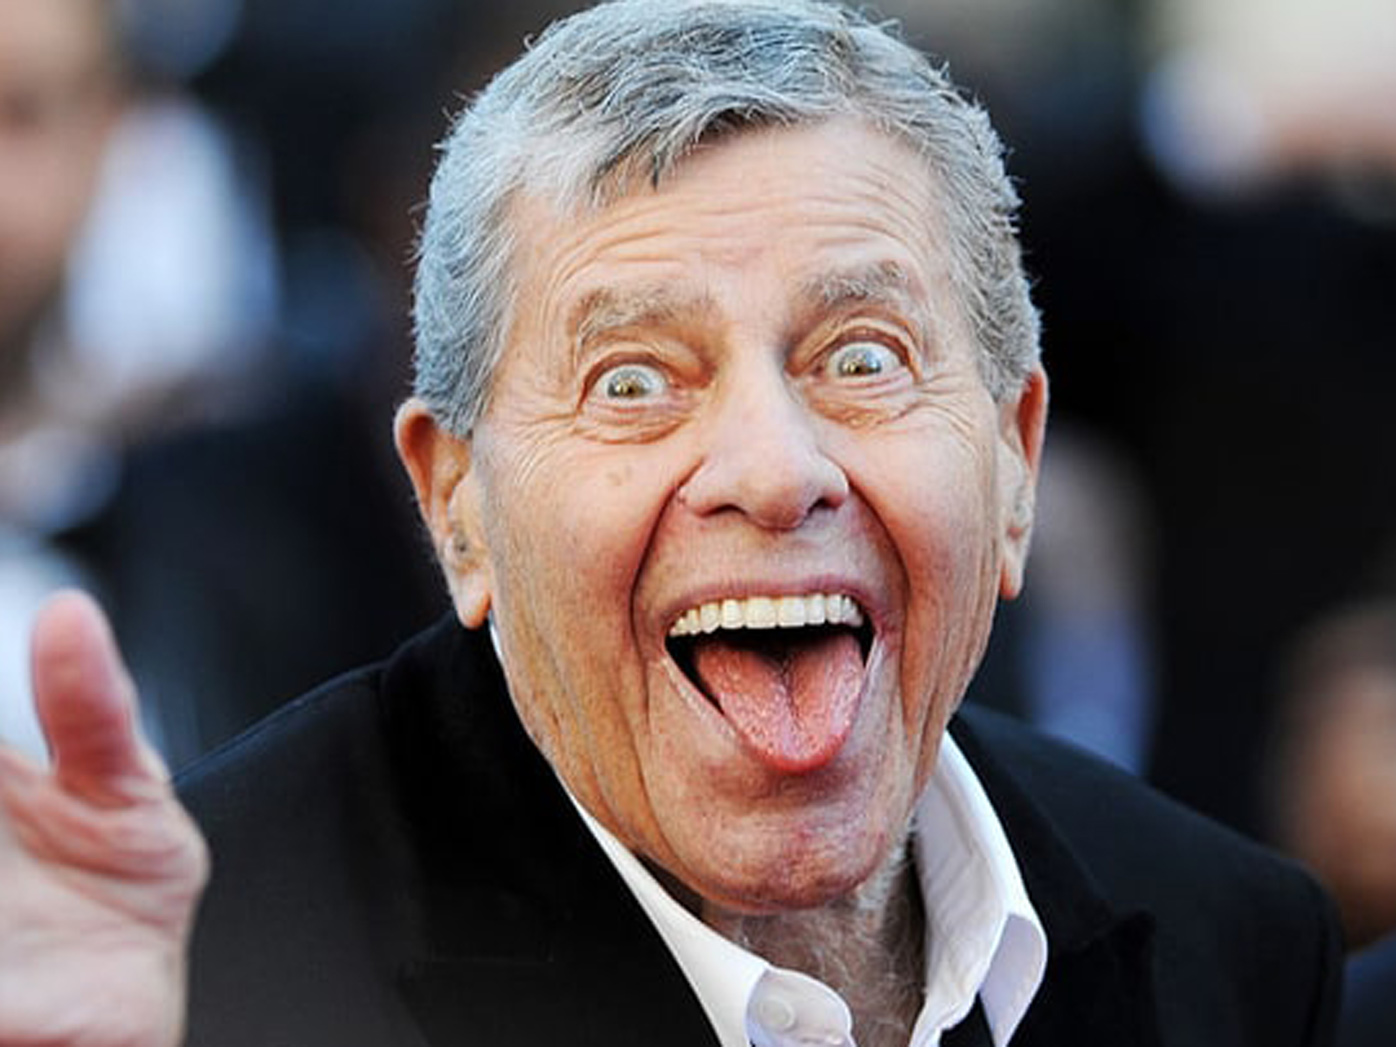 Jerry Lewis became well known for raising money for muscular dystrophy through an annual telethon.